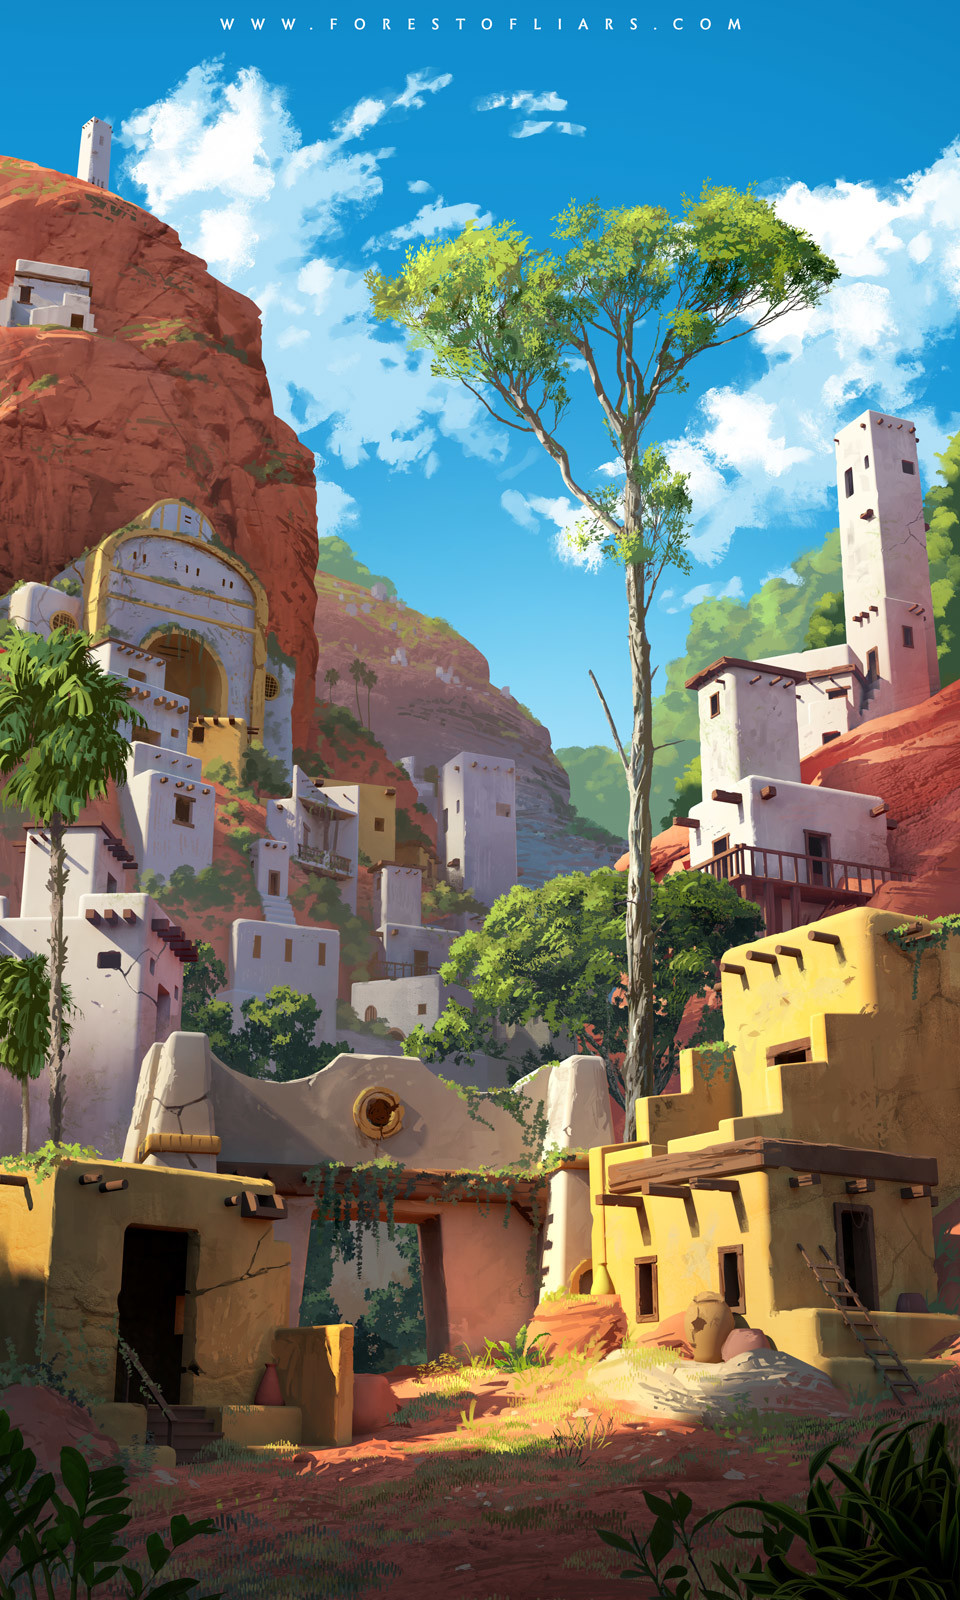 Forest of Liars : The forgotten city